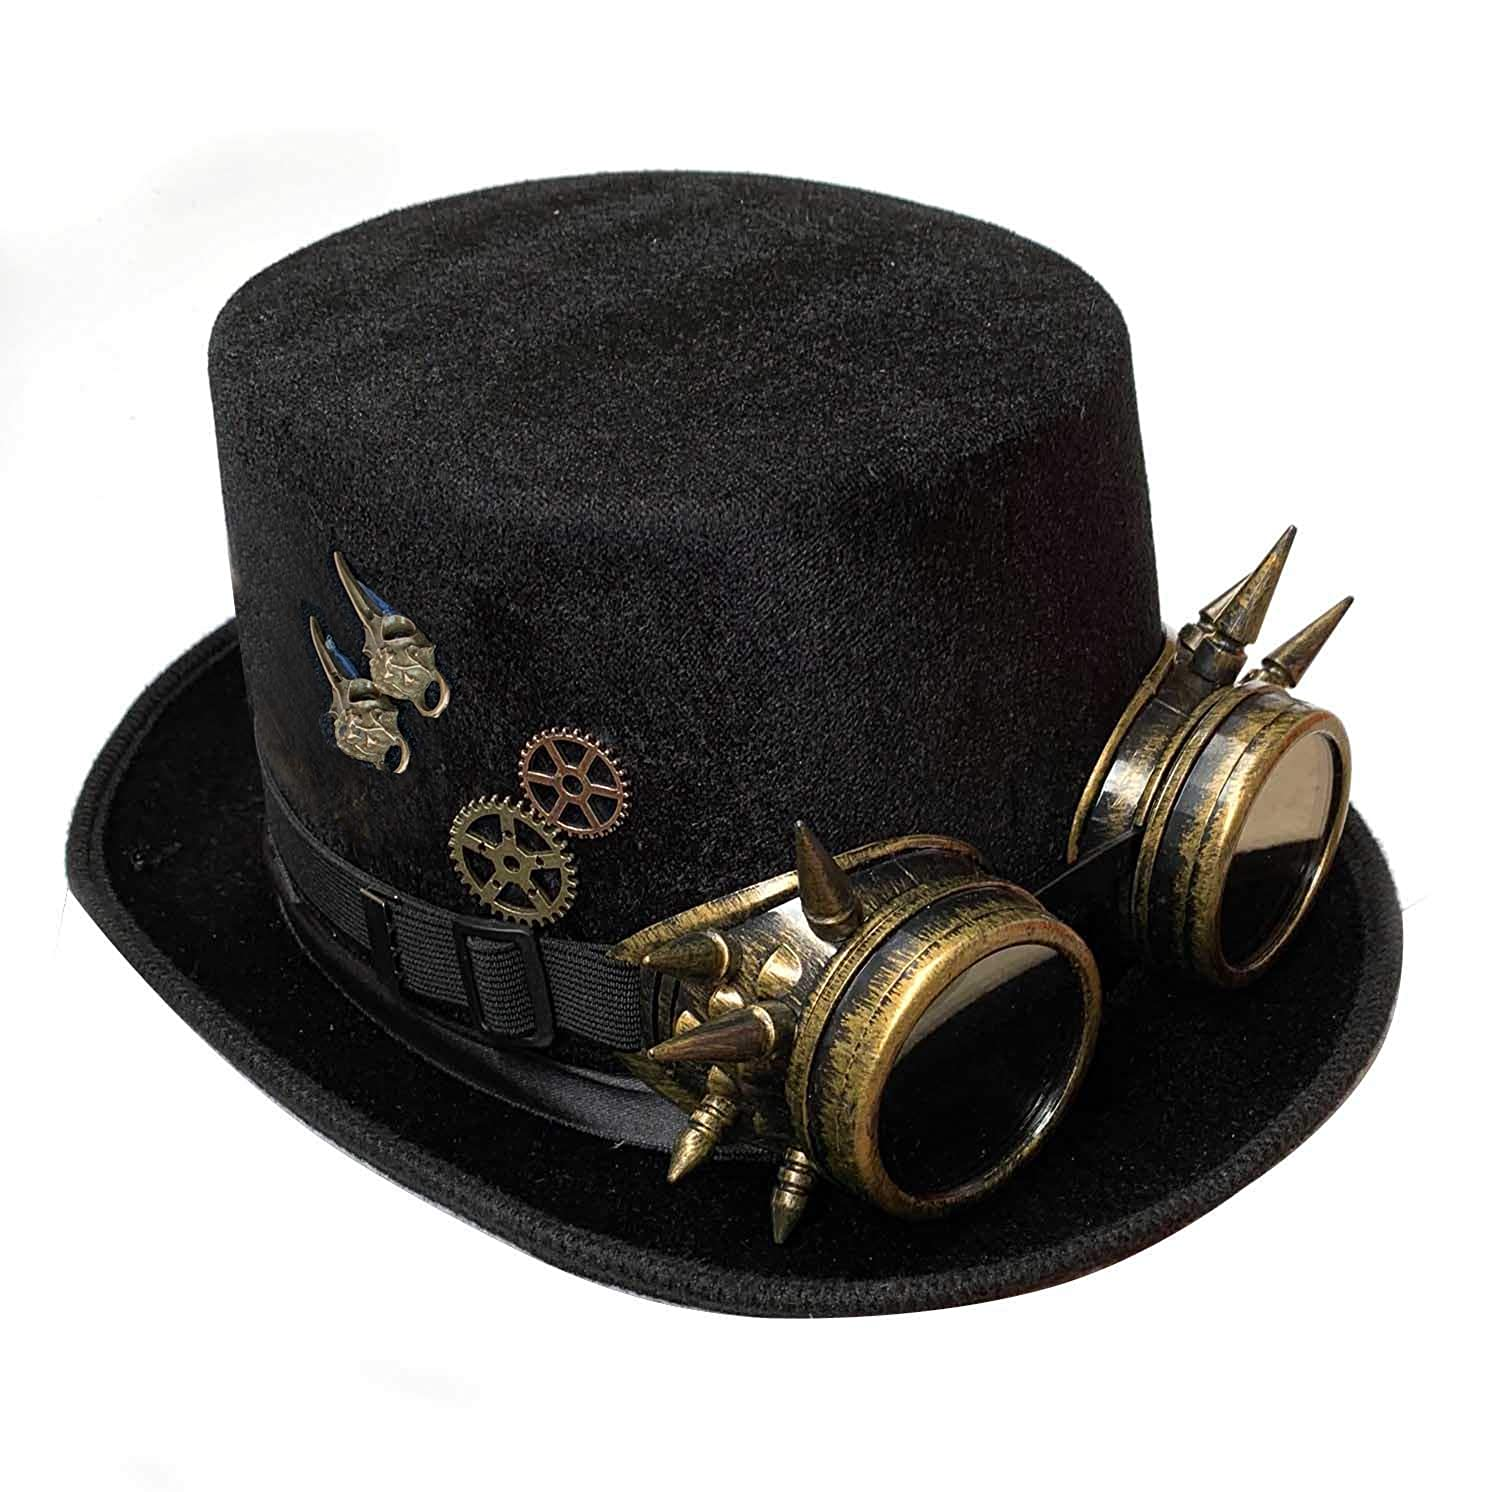 c12f7888073cc Amazon.com  Victorian Steampunk Top Hat Goggles Industrial Gears Bullet  Costume 3 Style Black  Clothing